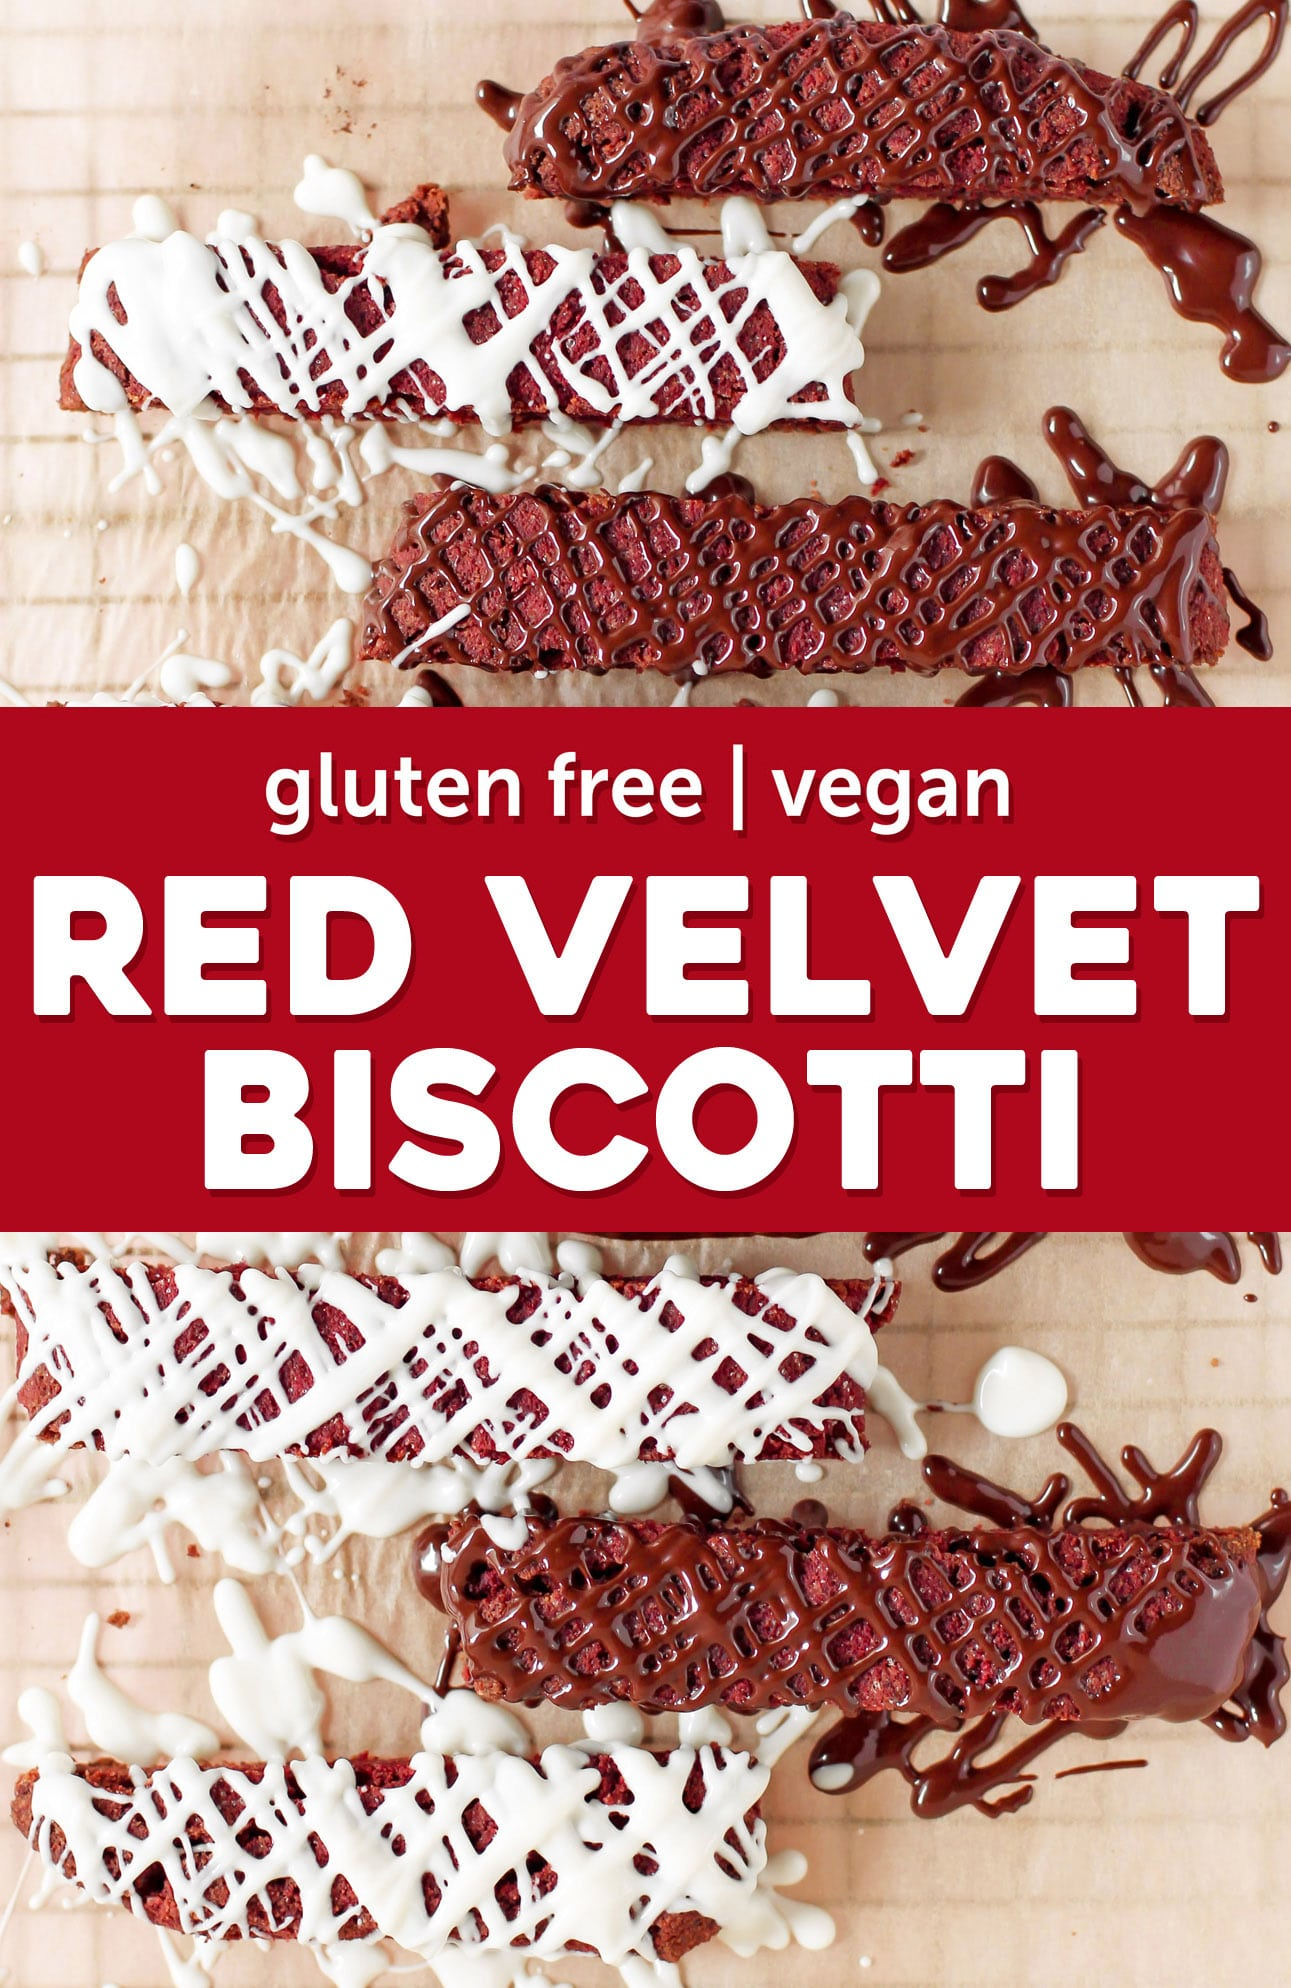 This NATURALLY RED Red Velvet Biscotti is crunchy, sweet, and drizzled with chocolate. You'd never know it's sugar free, gluten free, dairy free, and vegan! Instead of flour, we use almond meal. Instead of butter (and to add color), we use beets. Instead of eggs, we use ground flaxseed meal!